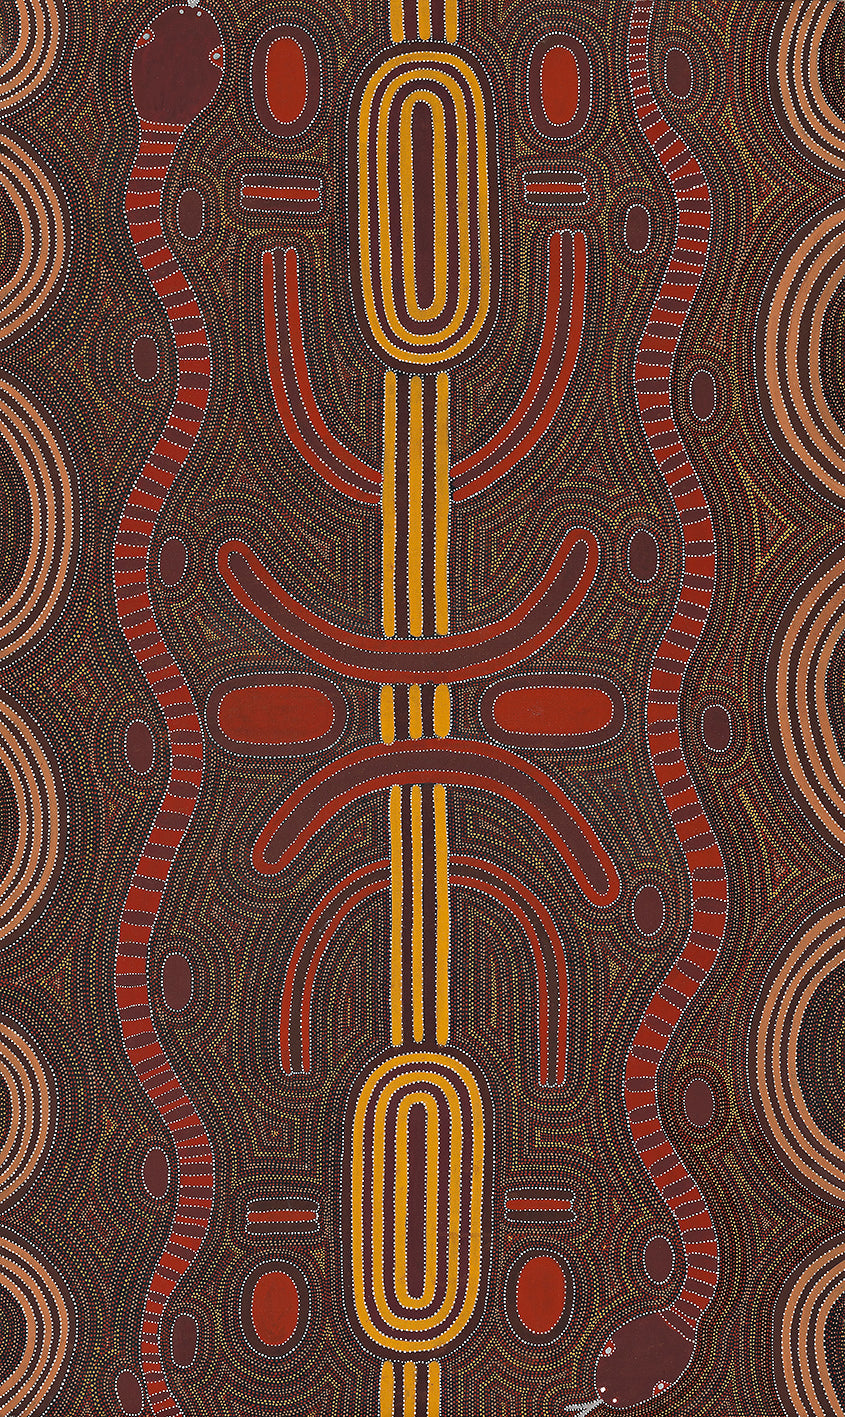 Australian Aboriginal Art Painting by Louie Pwerle of Utopia in 1997.